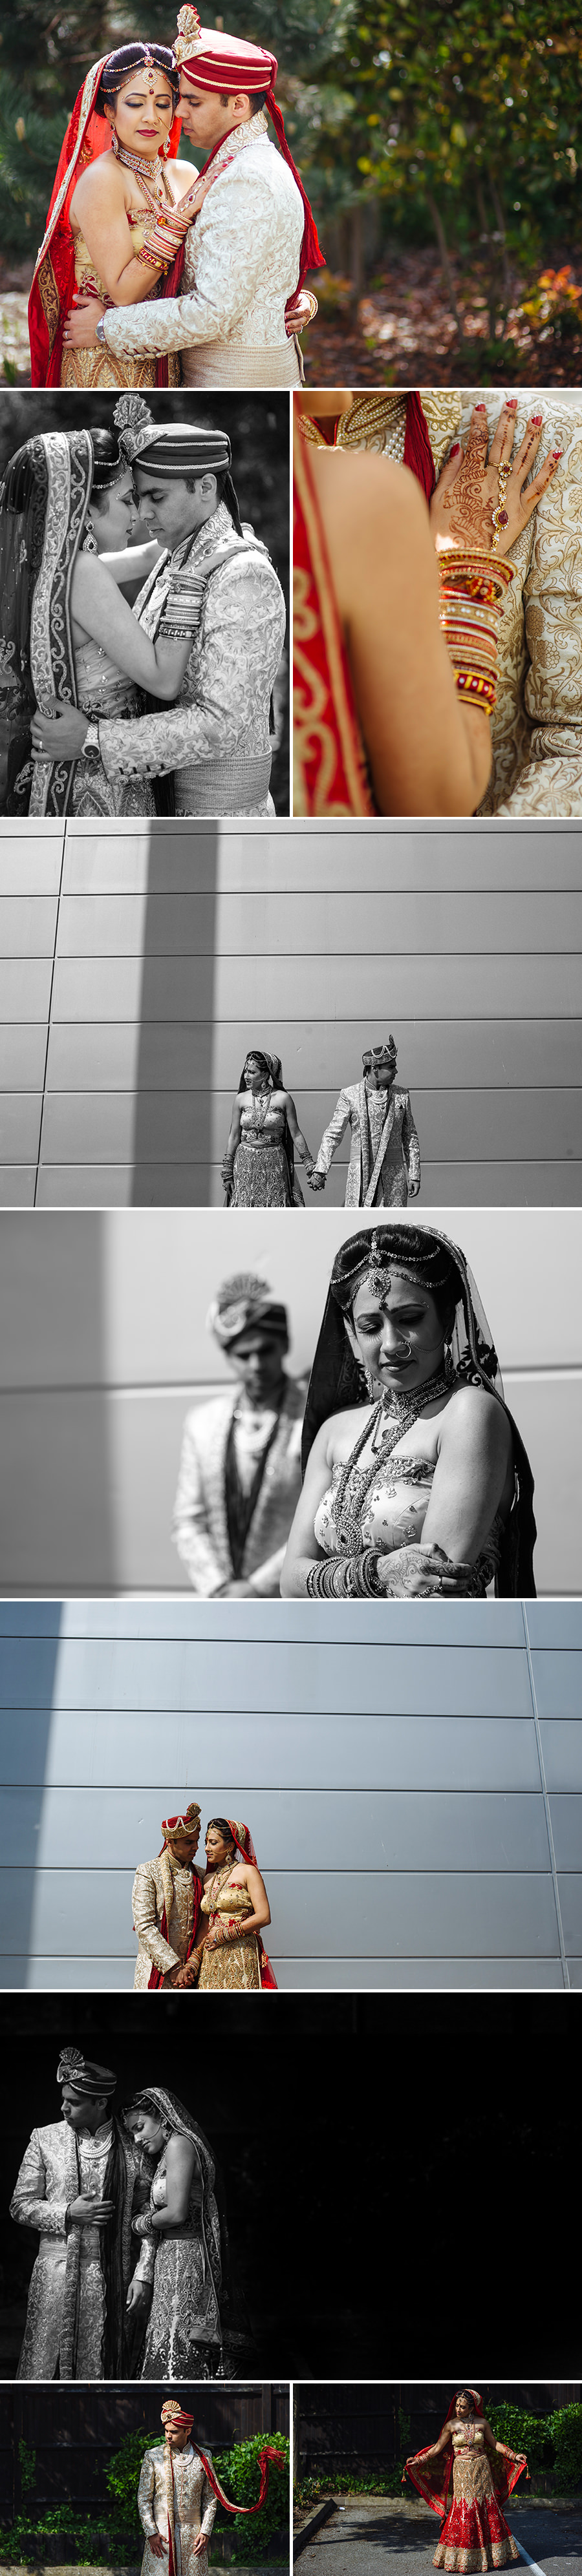 09_destination_indian_wedding_marriott wedding_top wedding photography_alternative wedding photographer _09